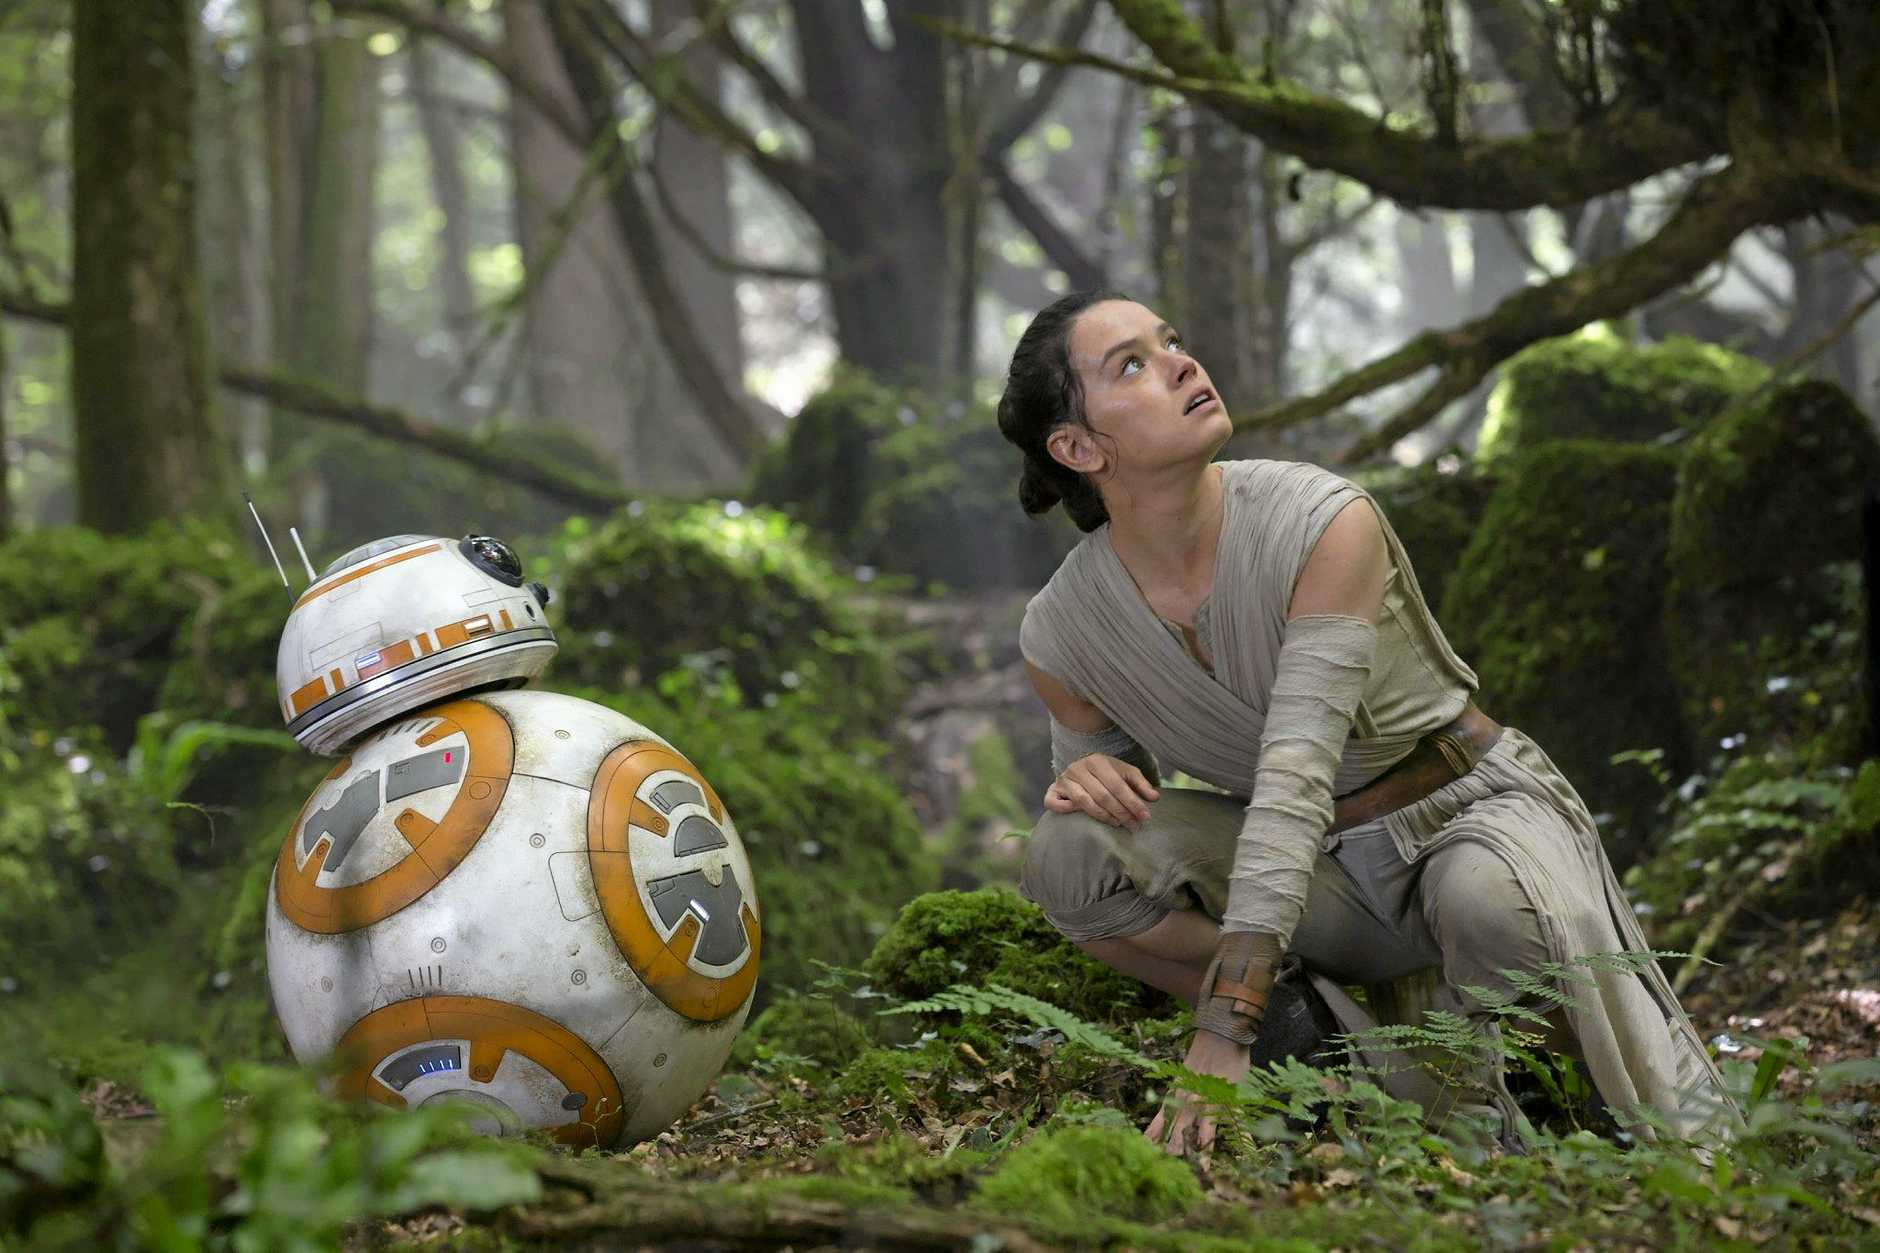 The character BB-8 and Daisy Ridley in a scene from Star Wars: The Force Awakens.